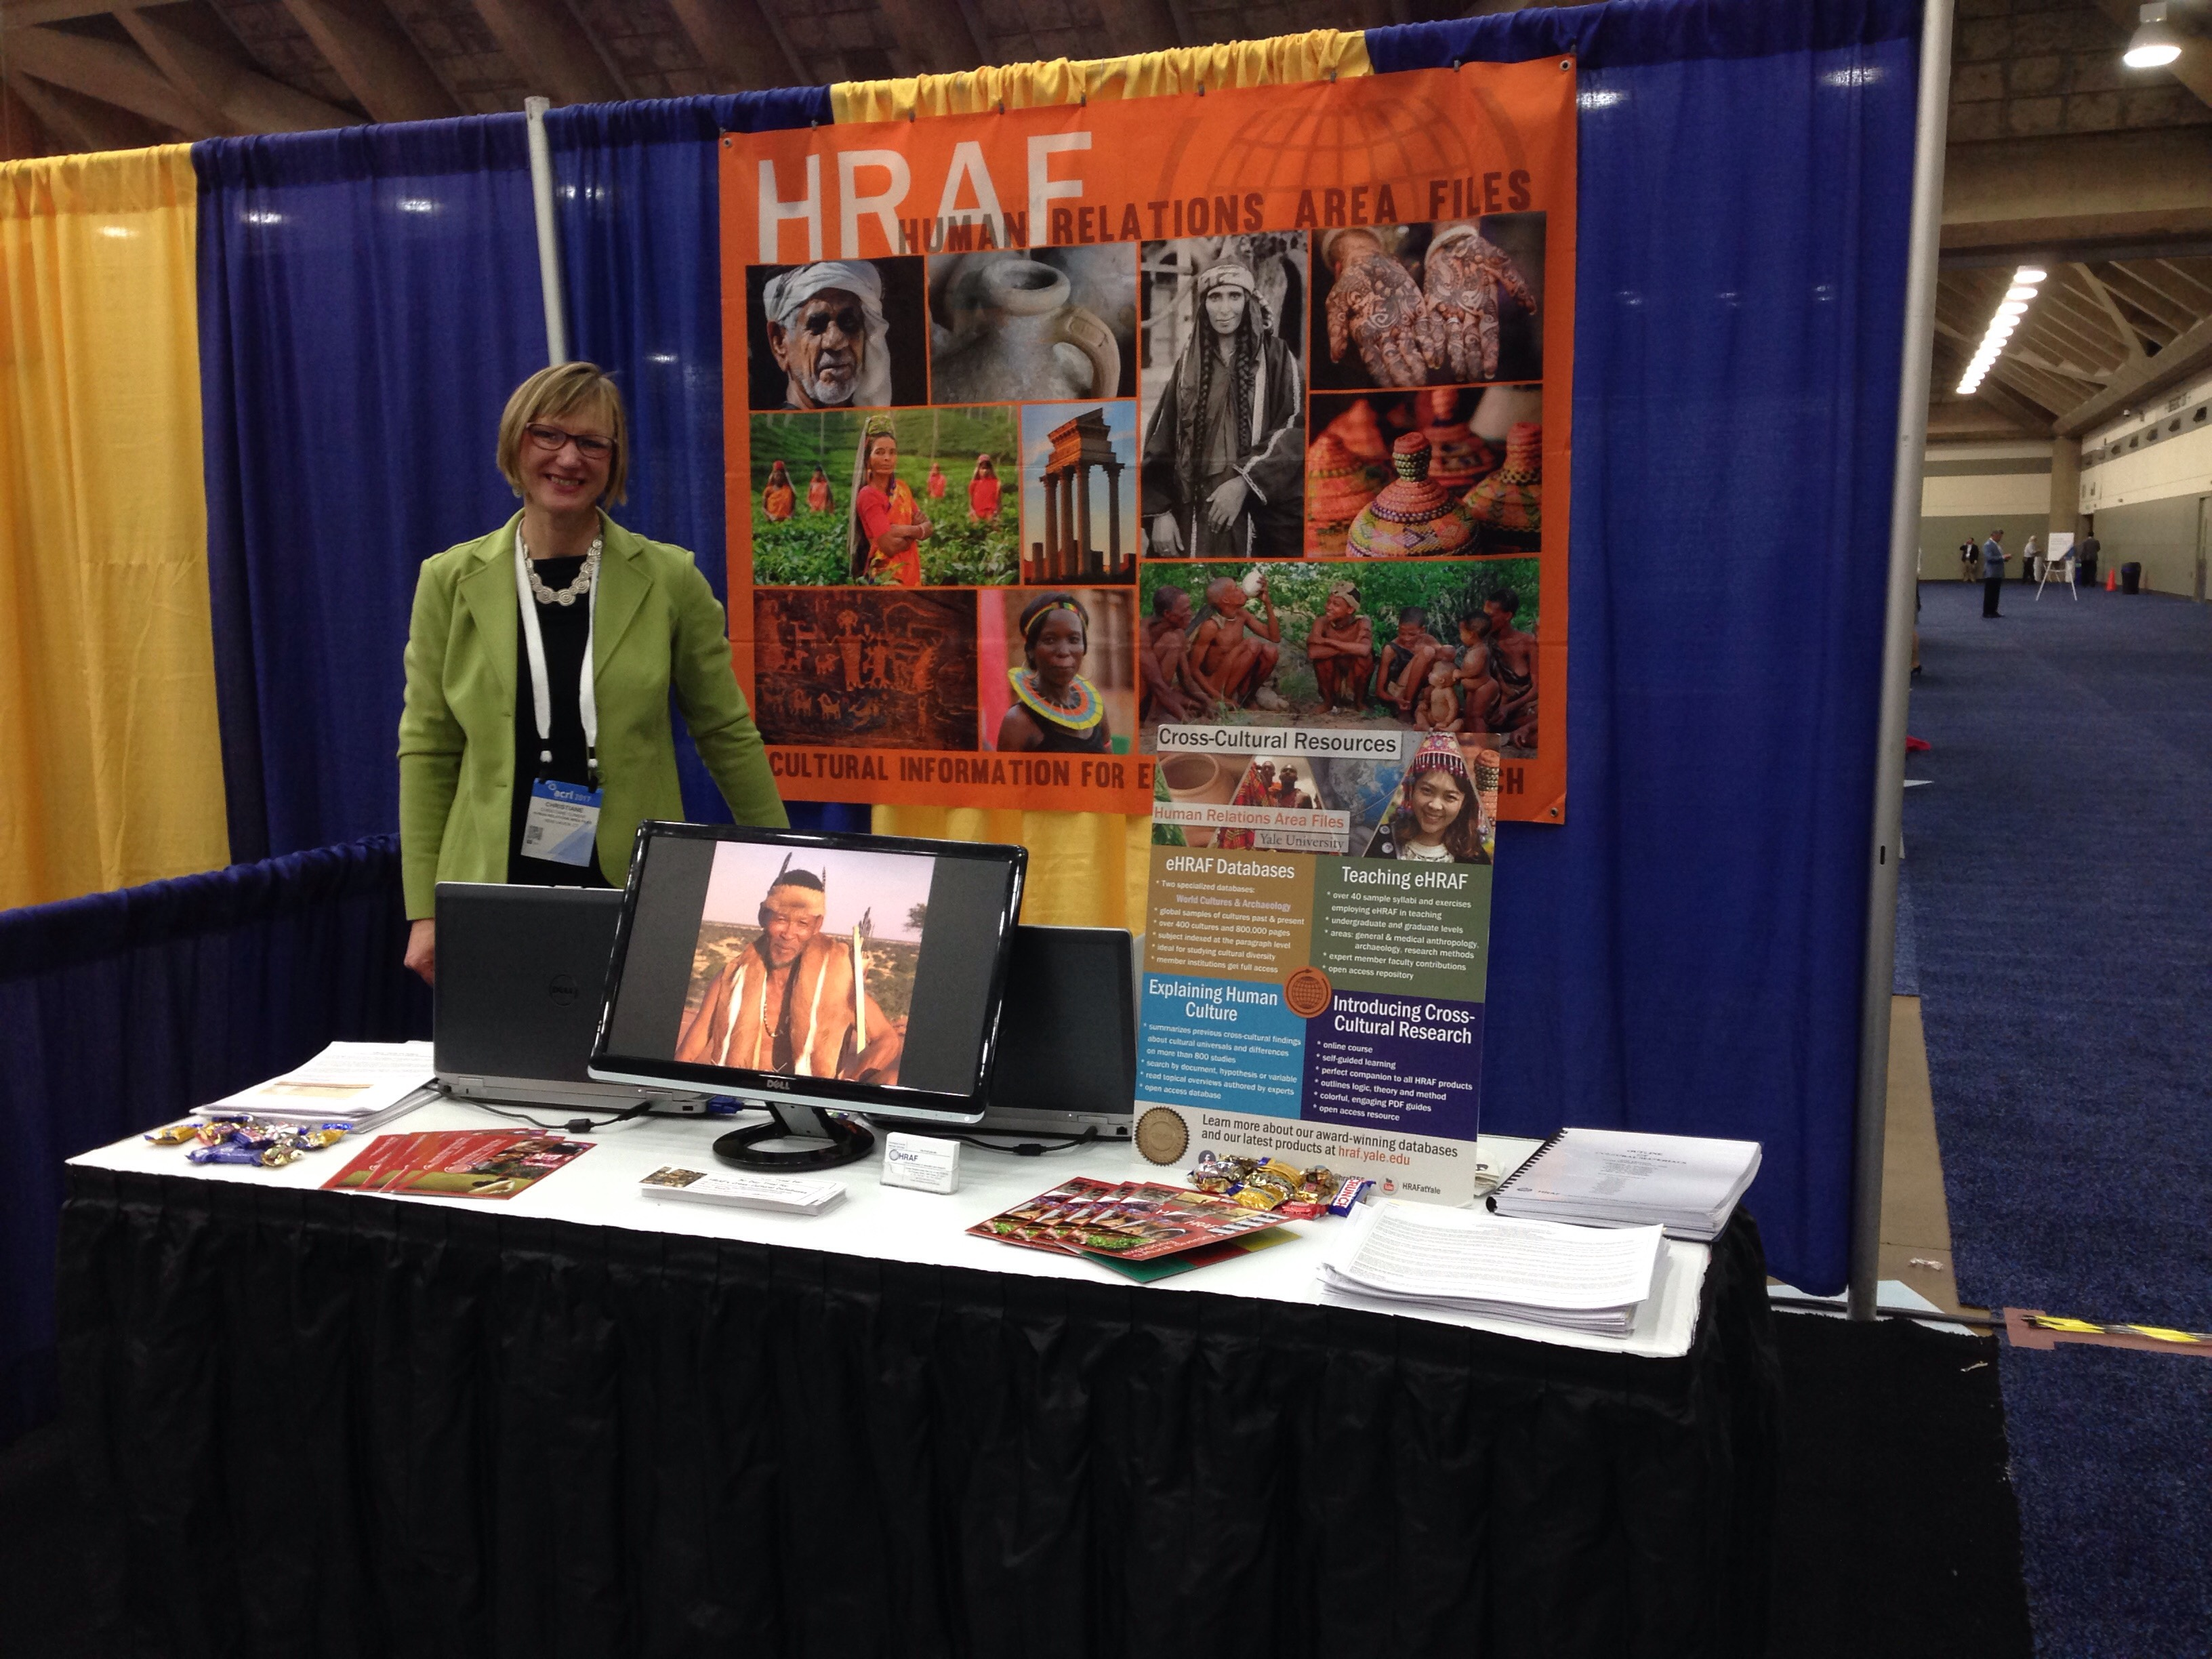 HRAF at Society for American Archaeology (SAA) Conference in Vancouver, B.C. (29 Mar-2 Apr 2017)